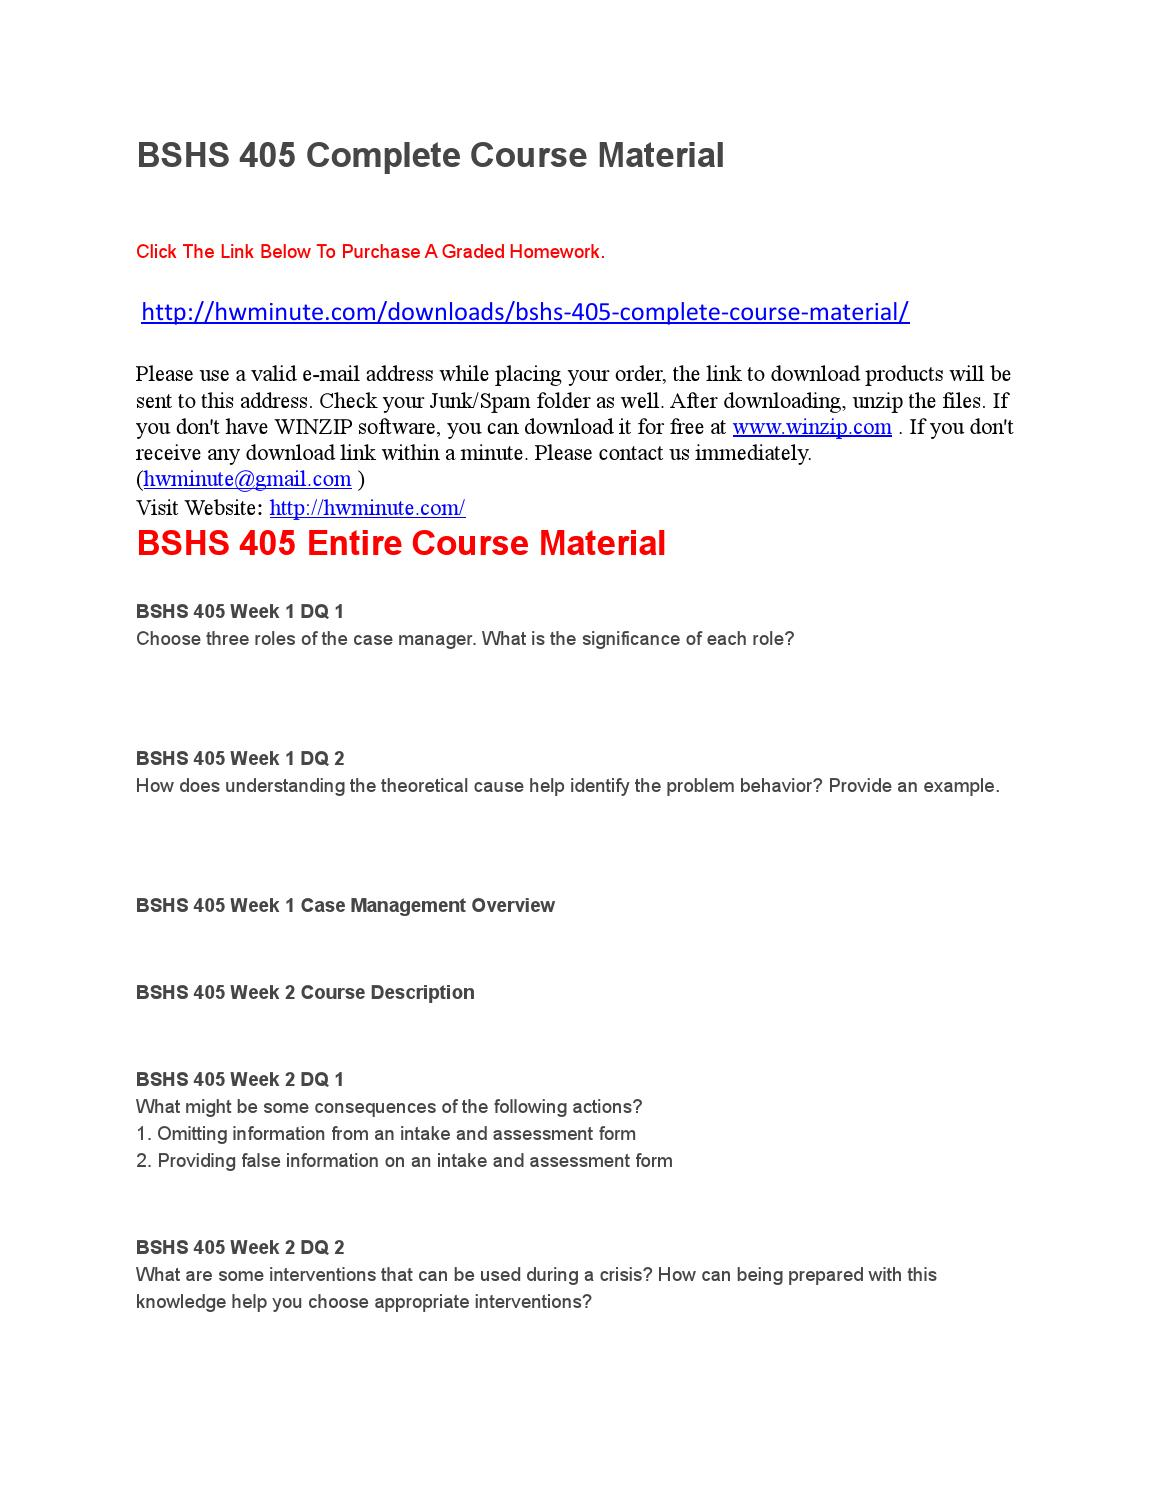 bshs 452 complete course material Instructor name sets syllabus apart from others for sections of the course possibly   practice drawings are explained, and assigned drawings are completed by.